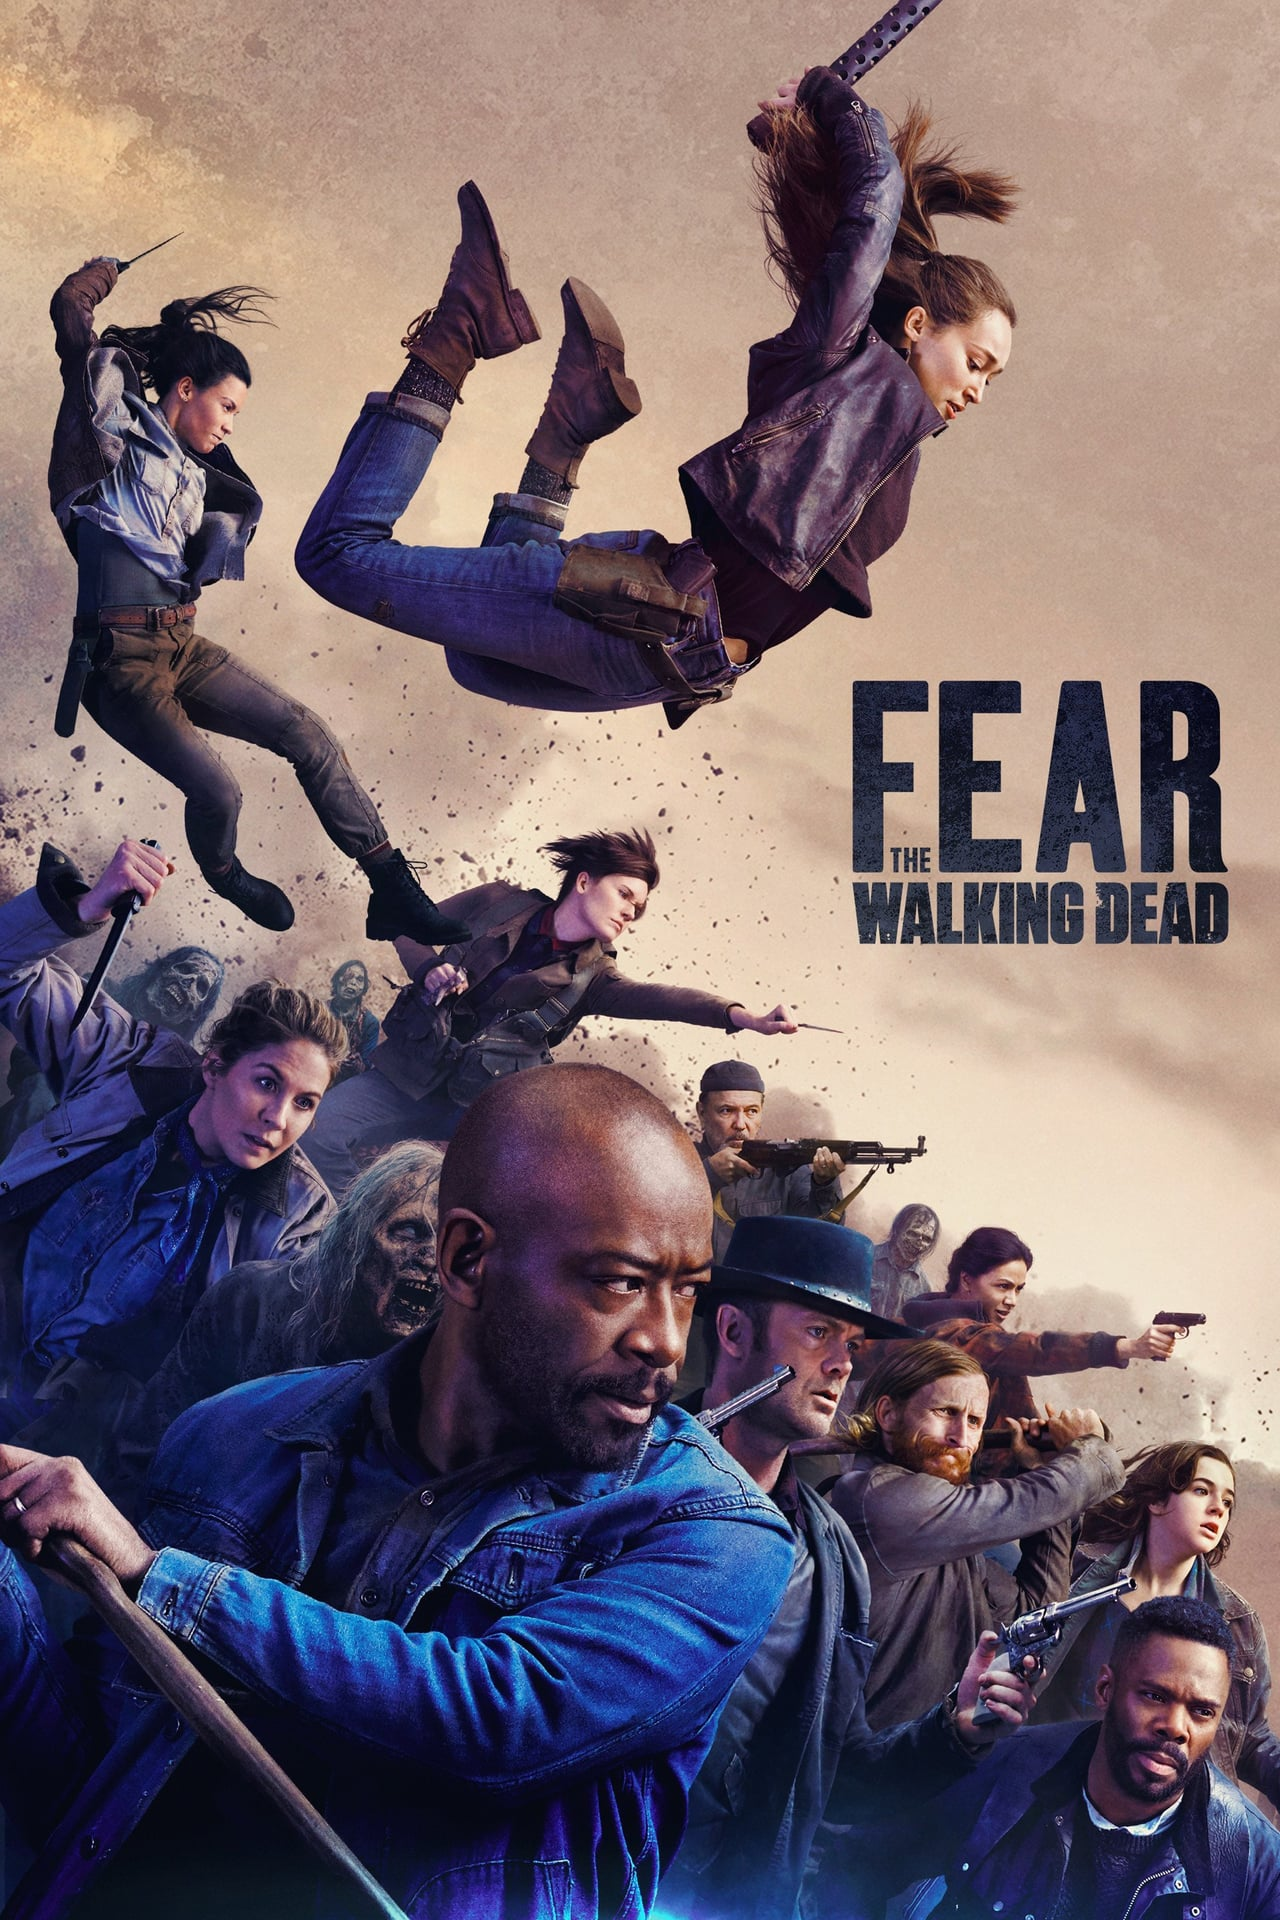 Fear the Walking Dead (TV Series 2015– ) - IMDb